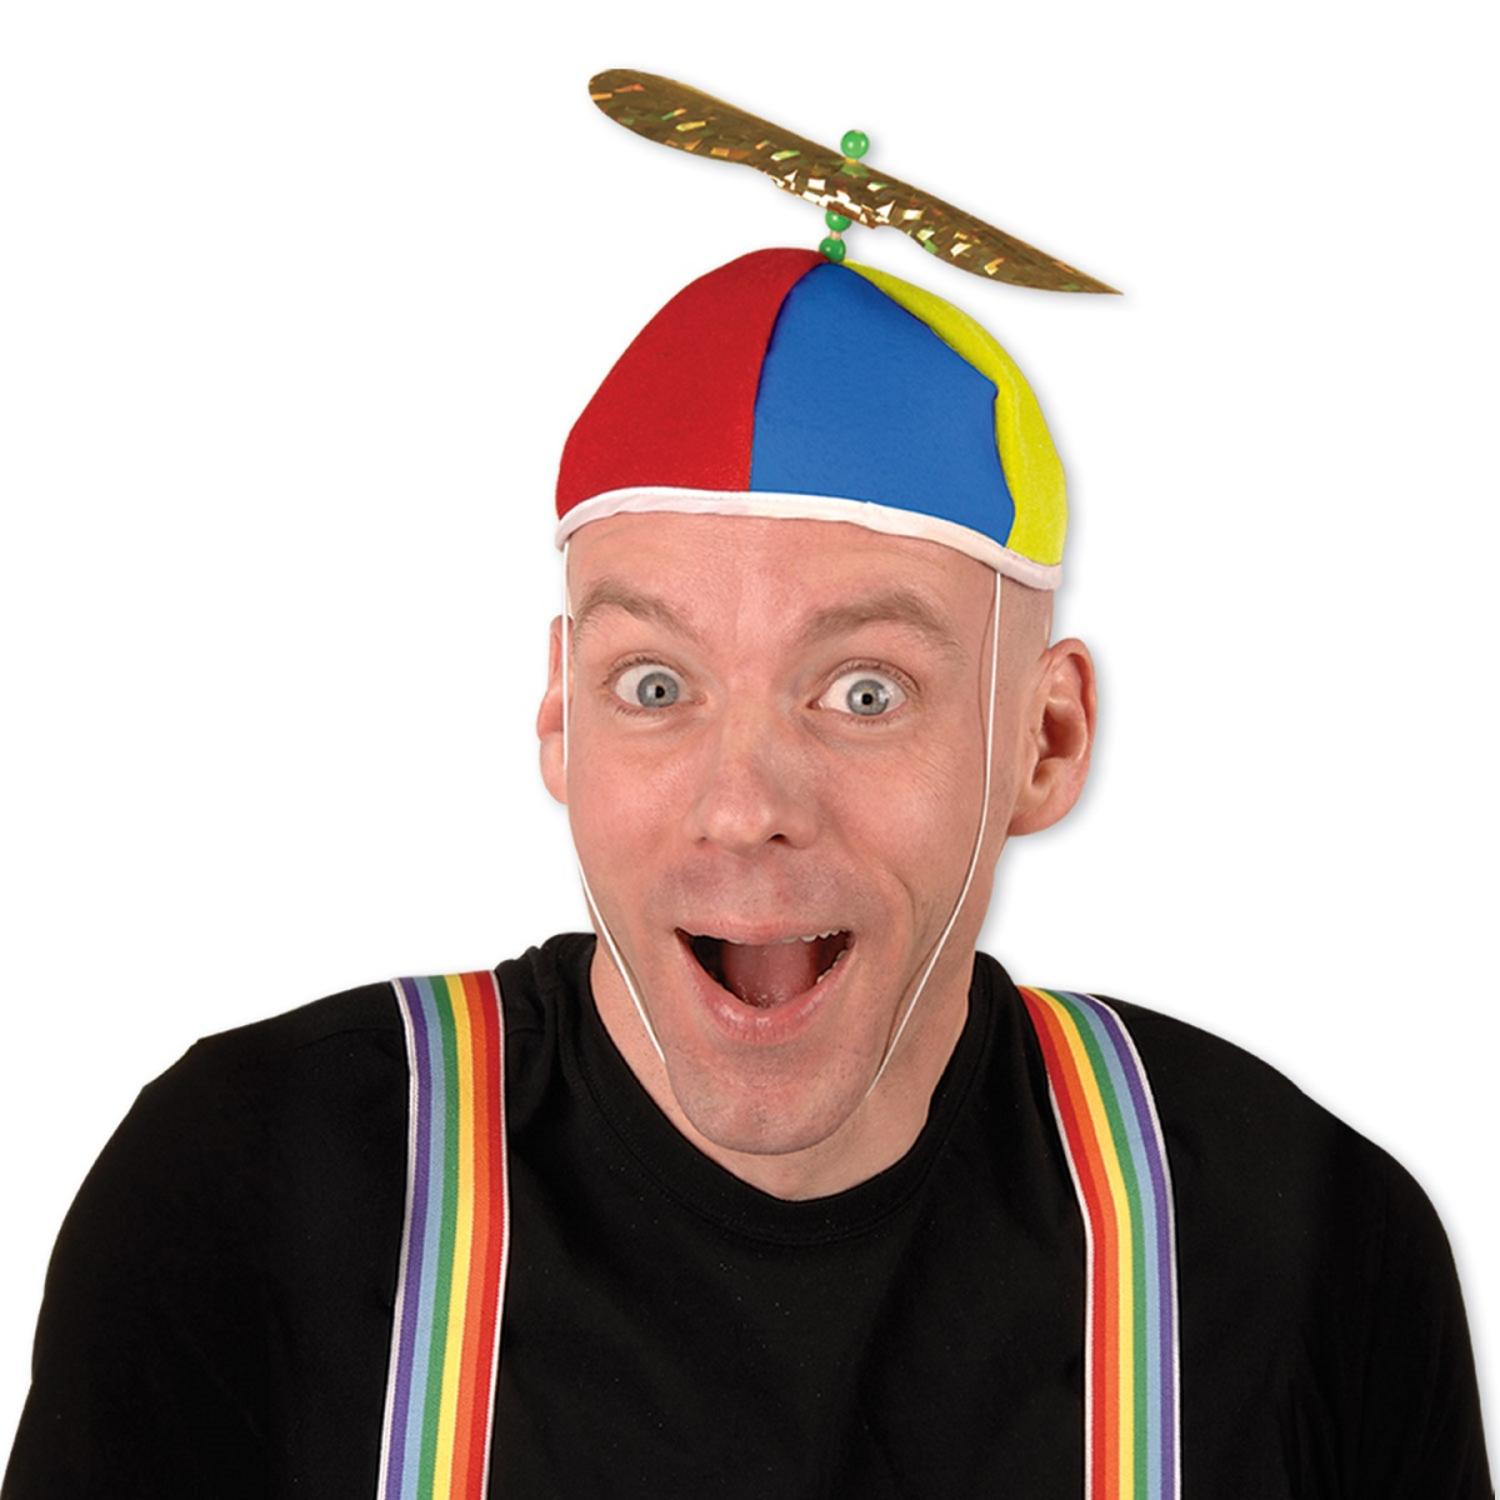 Pack of 12 Multi-Color Spinning Cyclone Propeller Beanie Party Hat